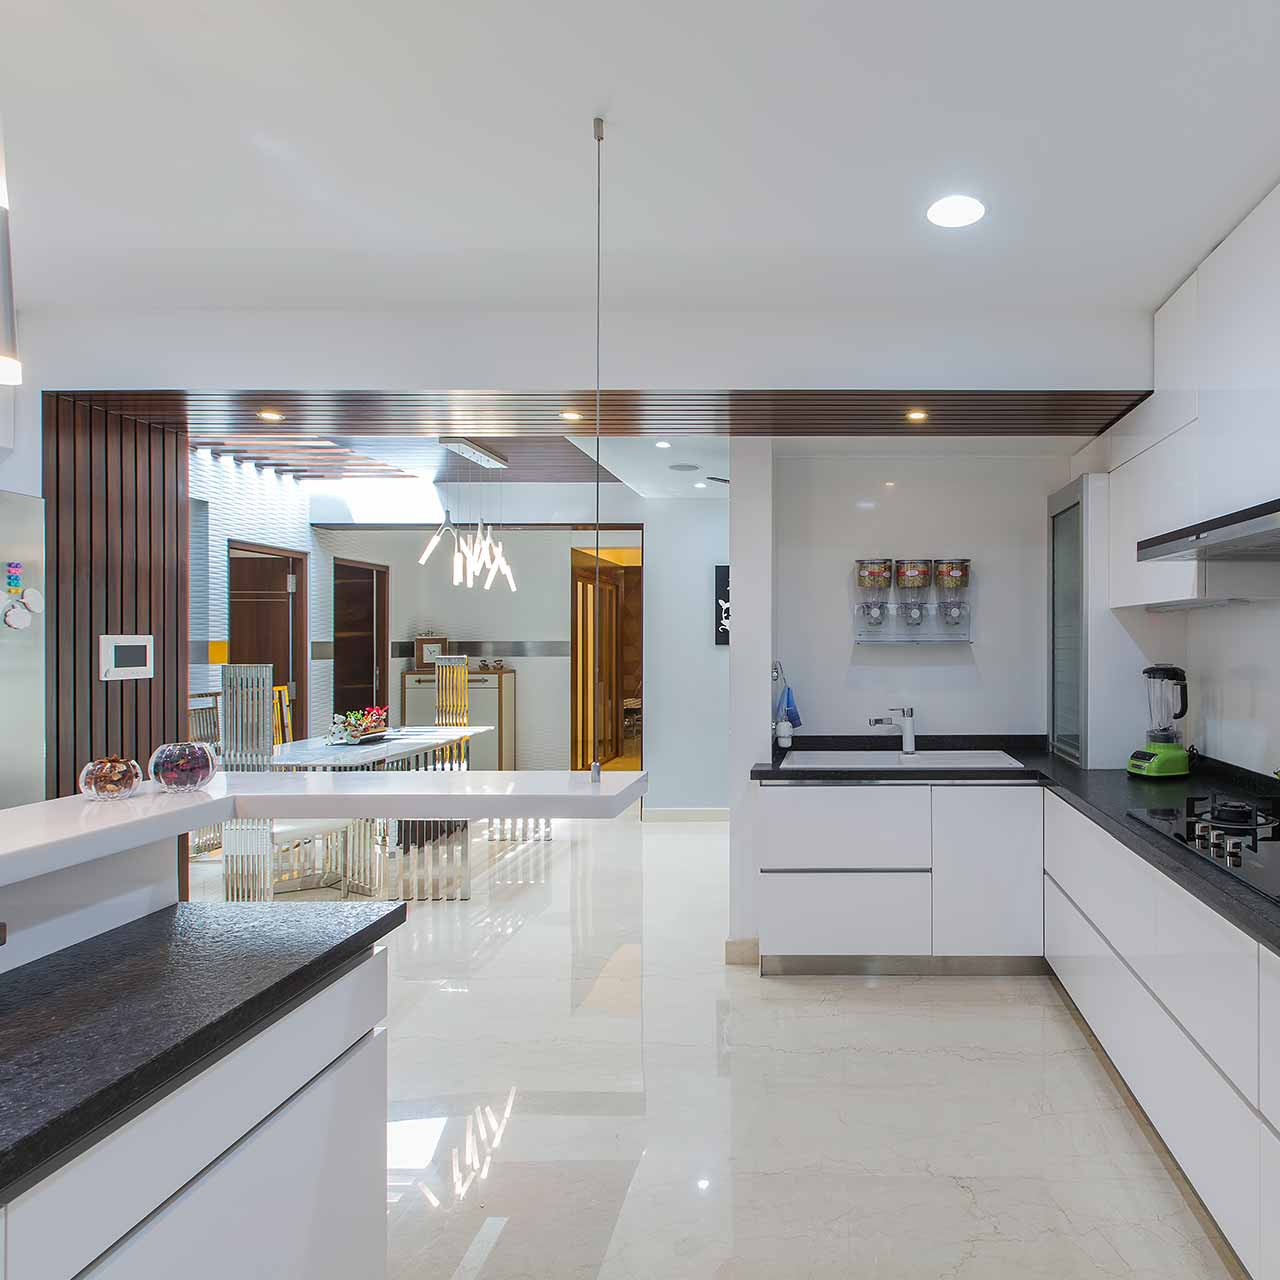 different types of kitchen: design own kitchen layout according to your own needs with a design that matches your style in square kitchen layout